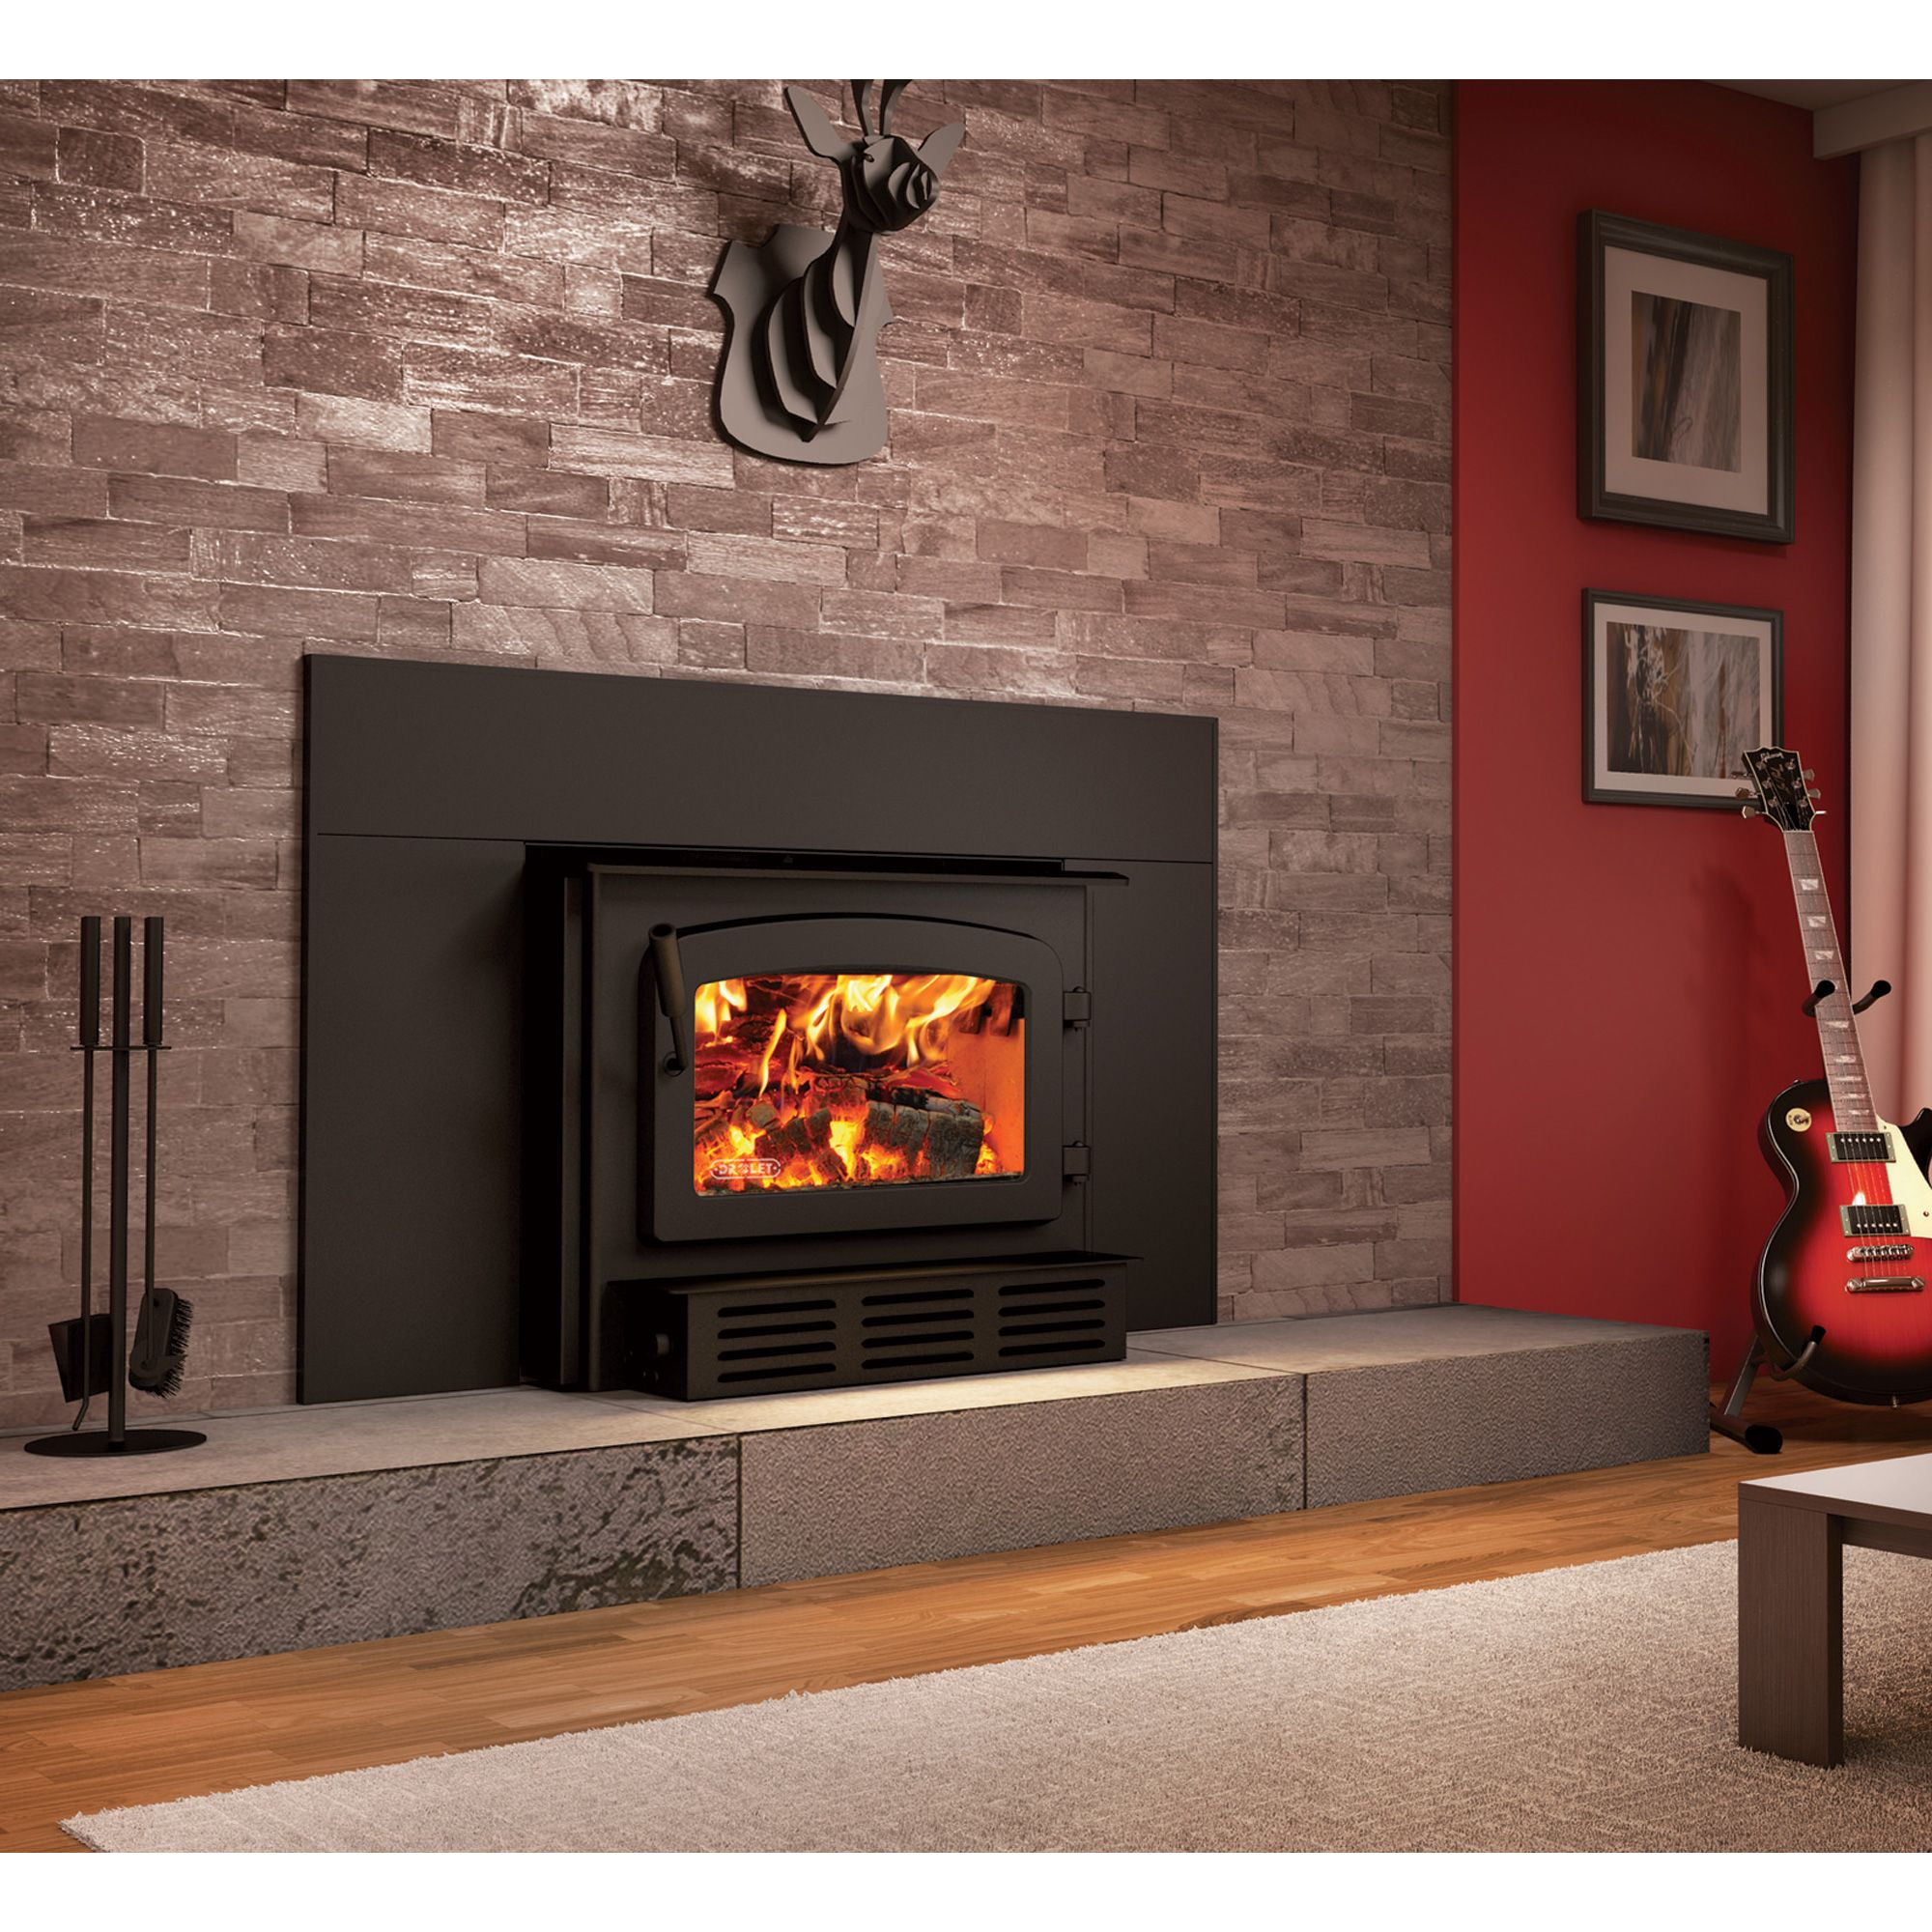 safe cabello inserts london c fireplace home wood burning ontario